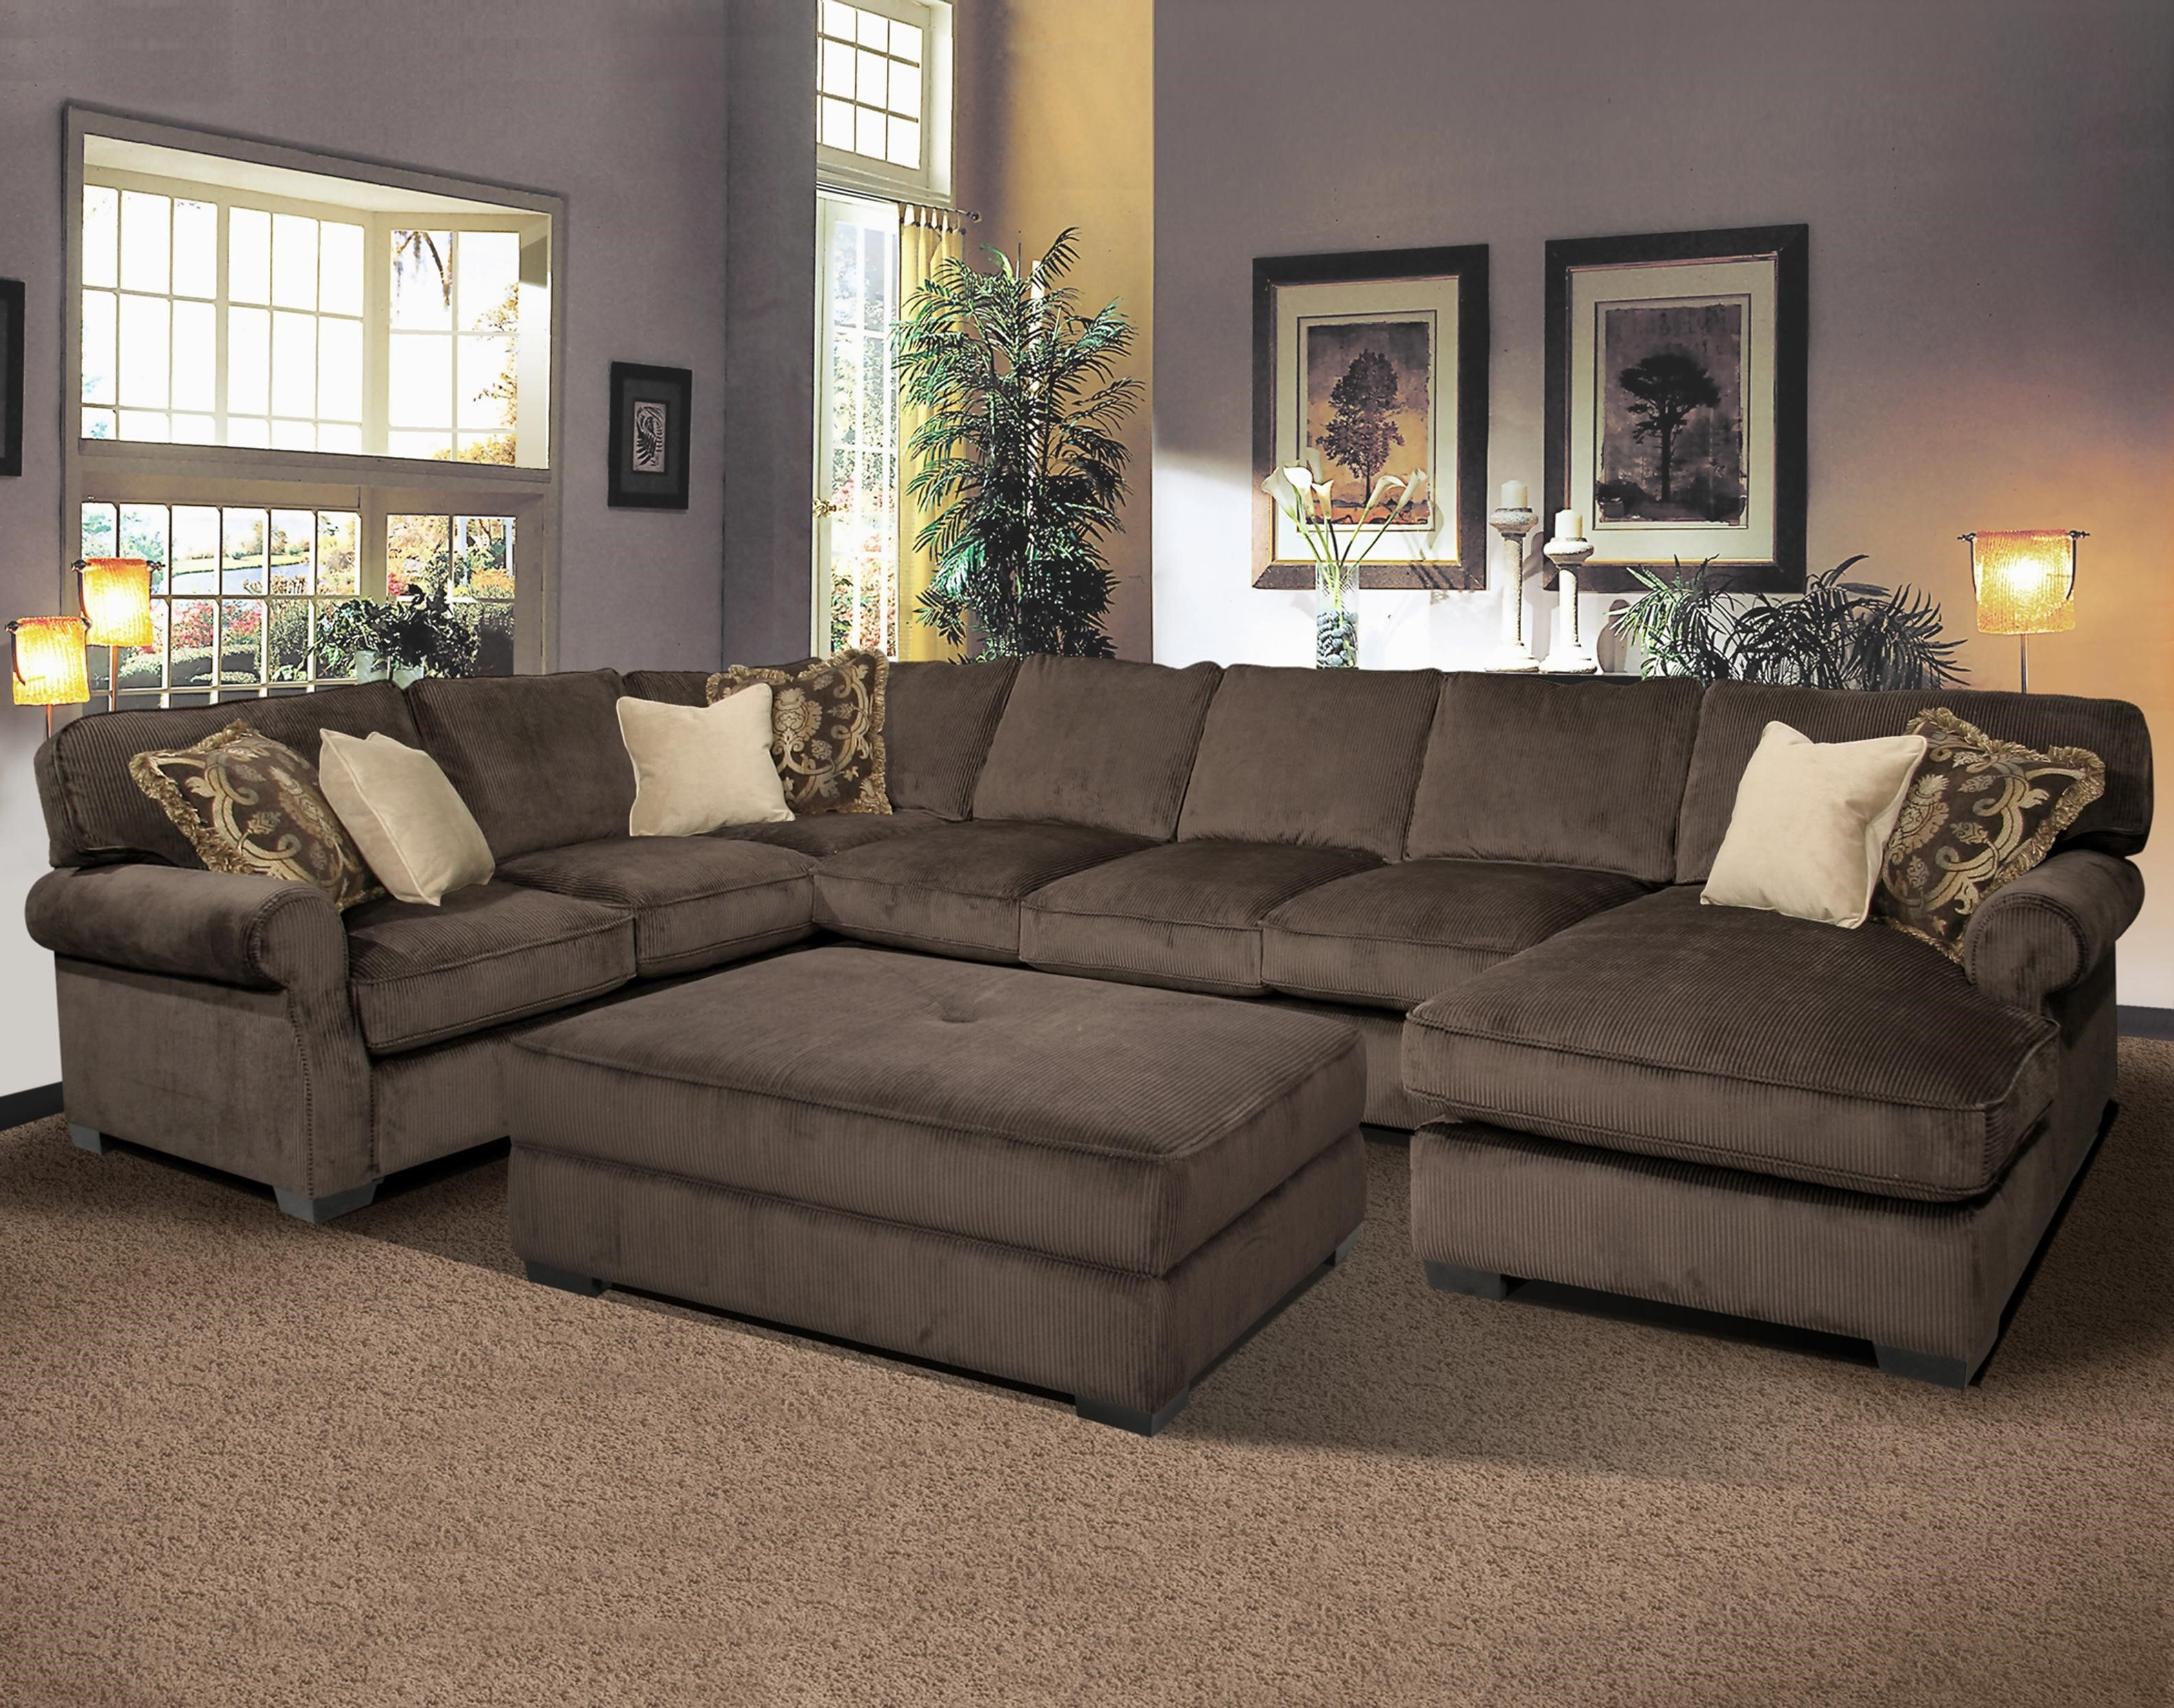 Recent Tulsa Sectional Sofas In Comfortable Living Room Sofas Design With Elegant Overstuffed (View 6 of 15)